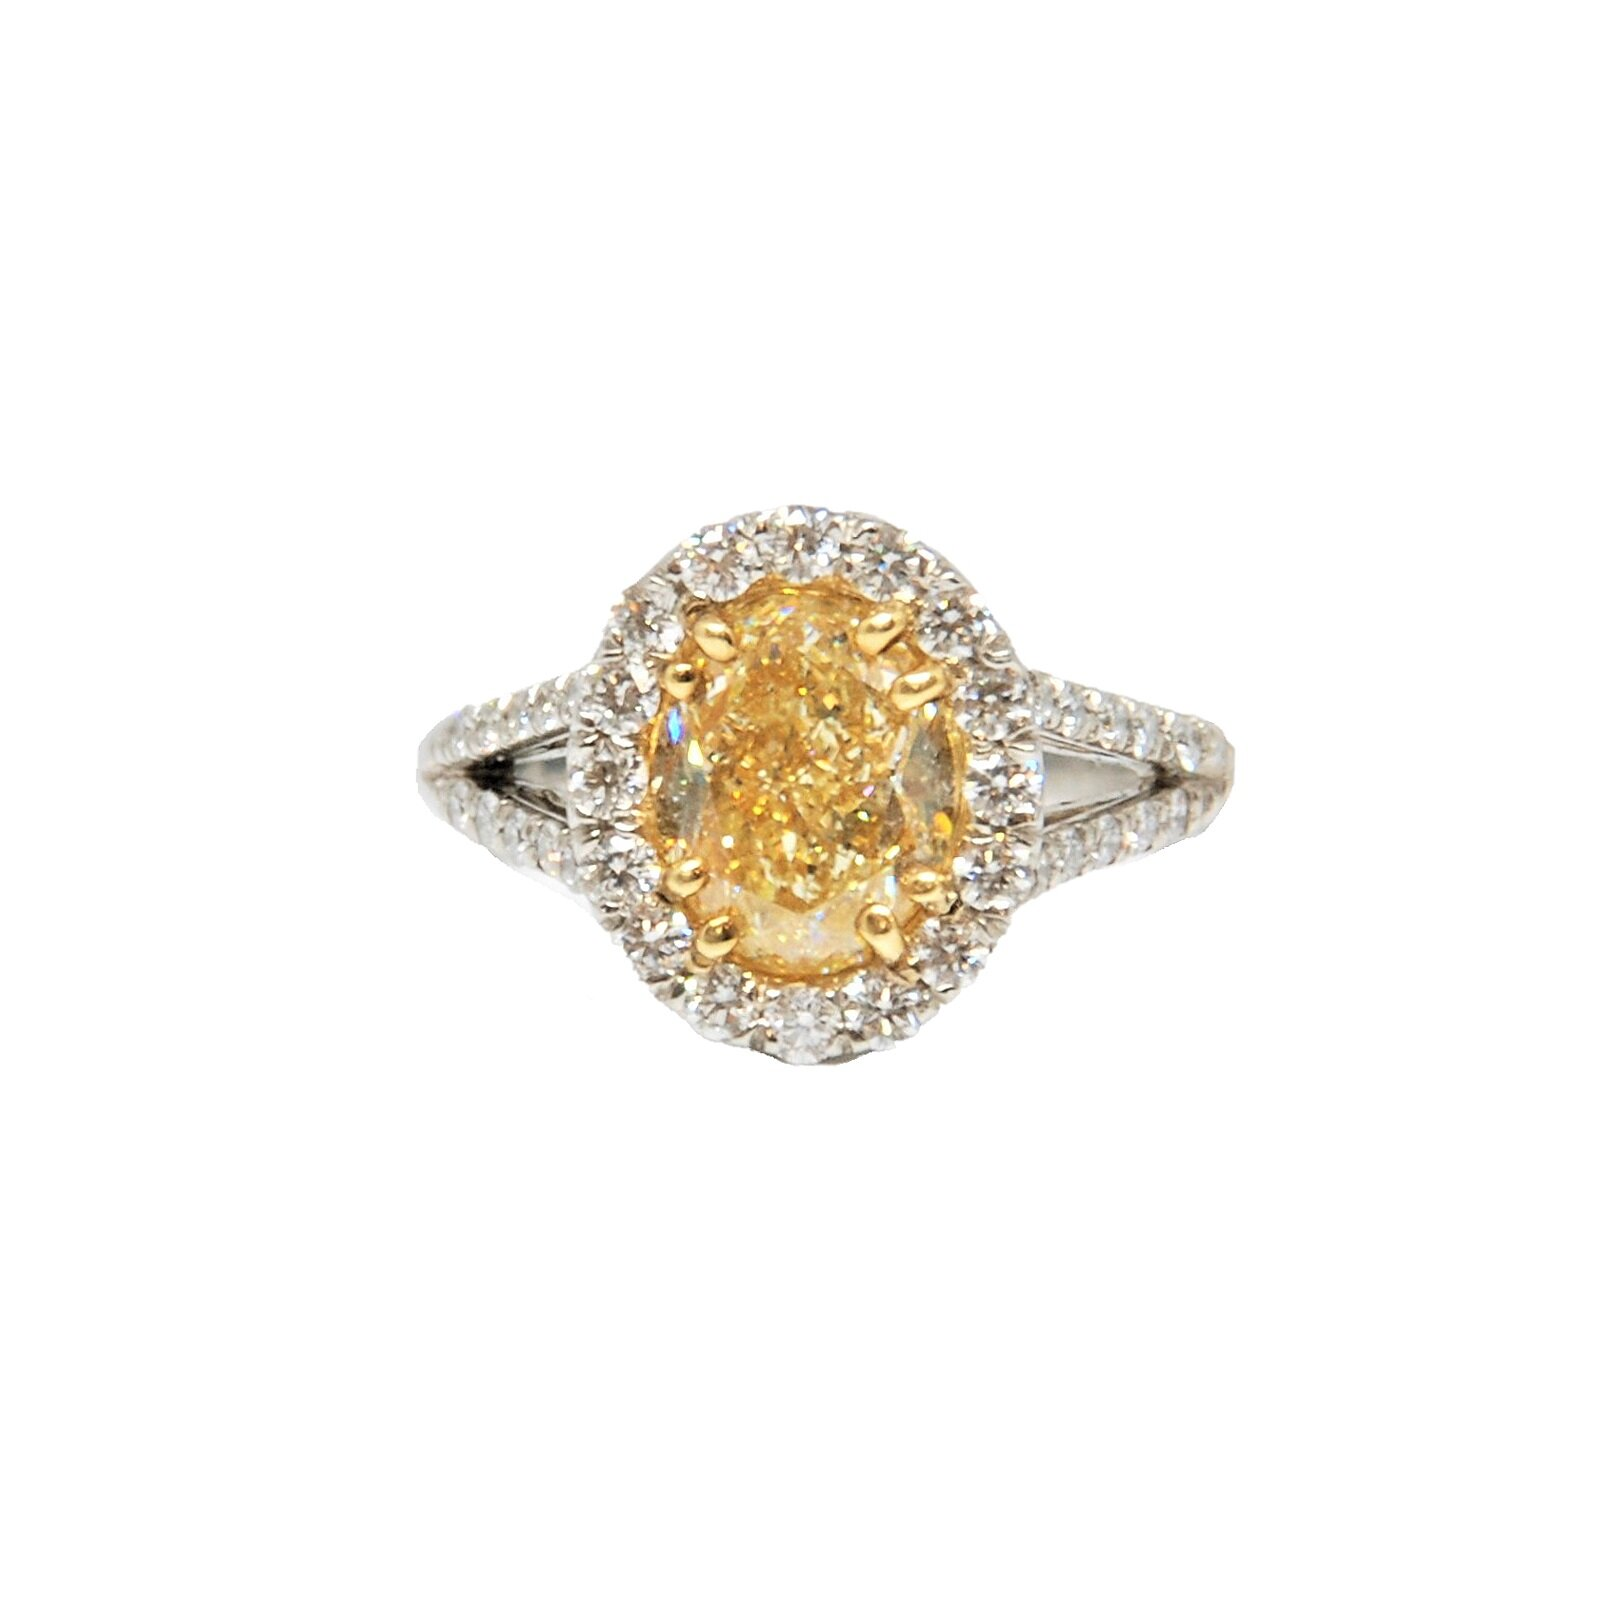 Natural Oval Yellow Diamond Ring